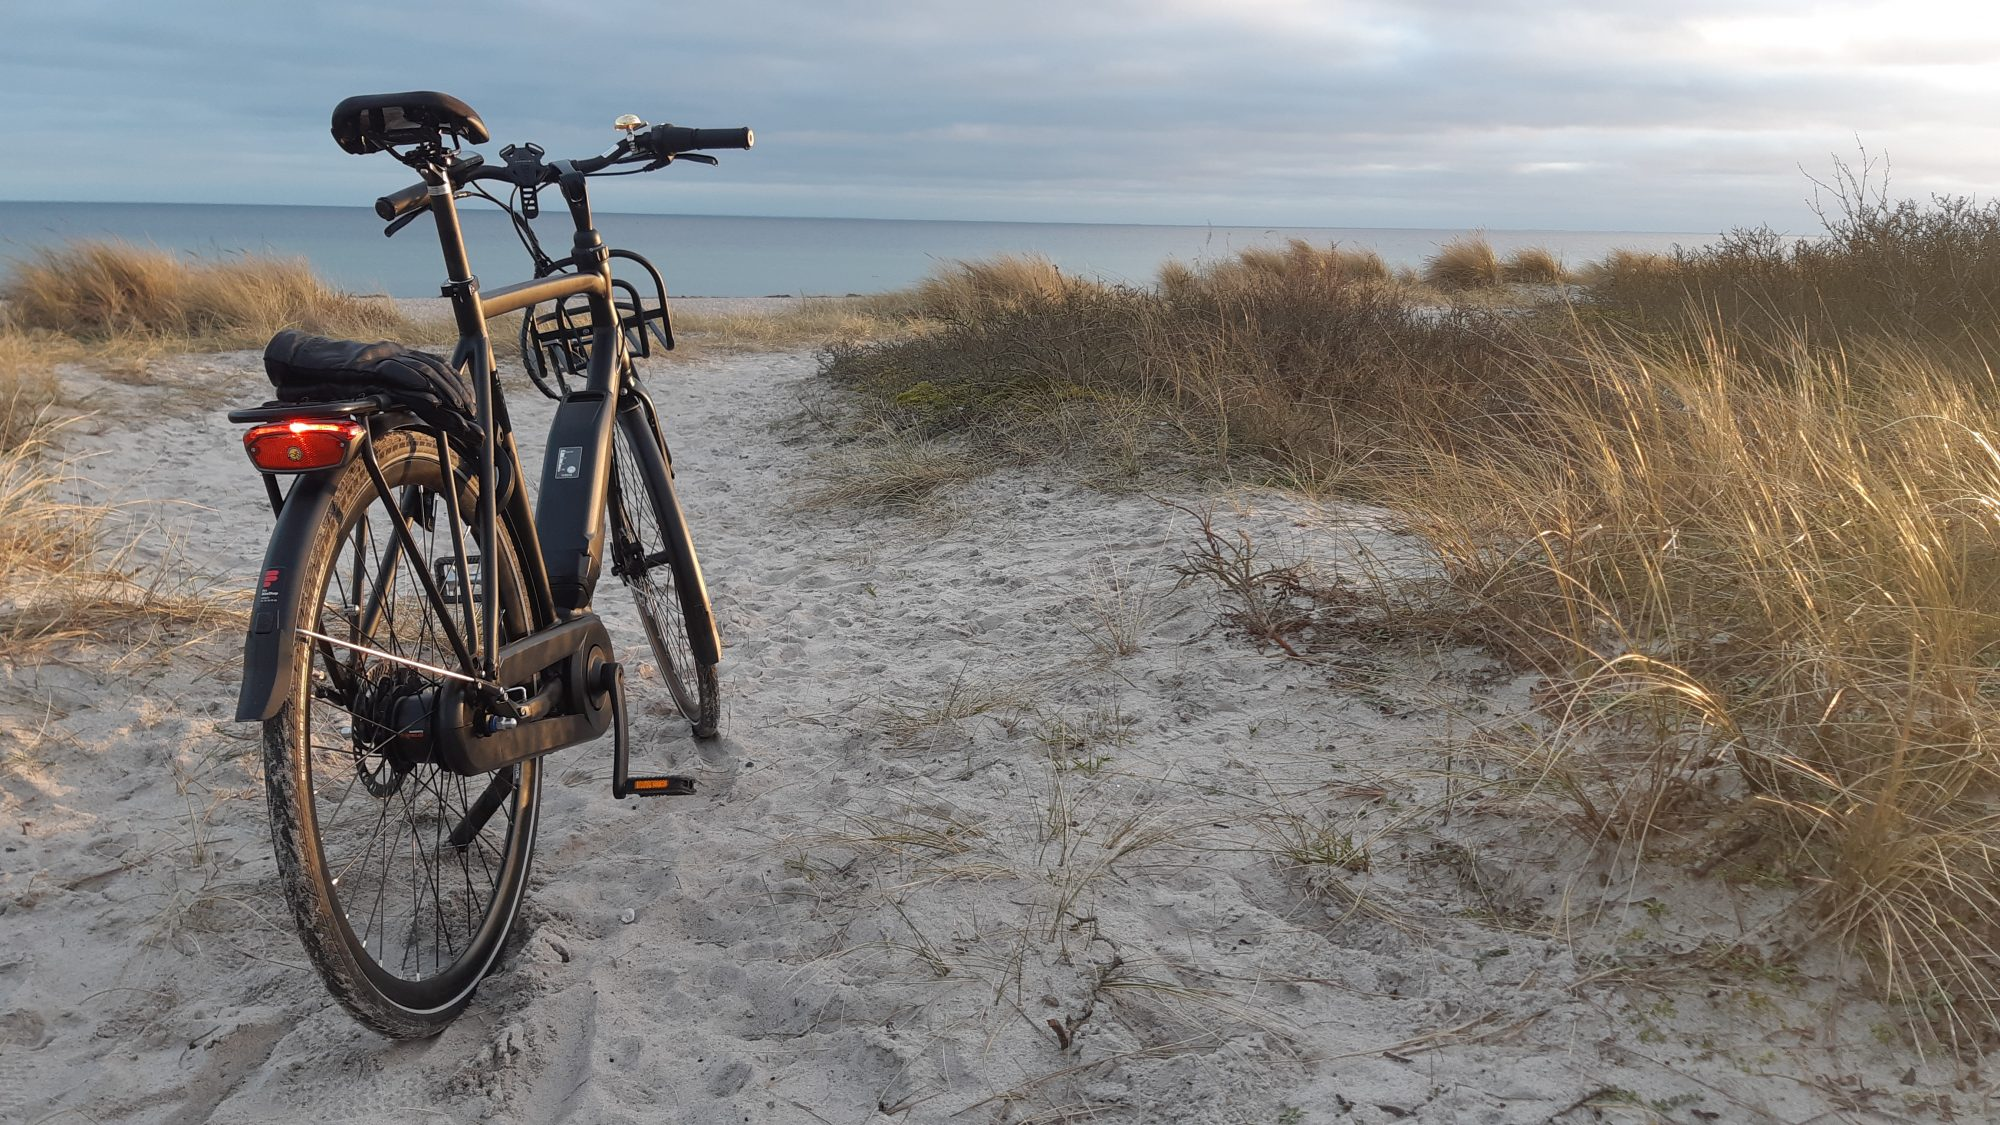 The fast Batavus Harlem electric bike at the beach of Hundige.